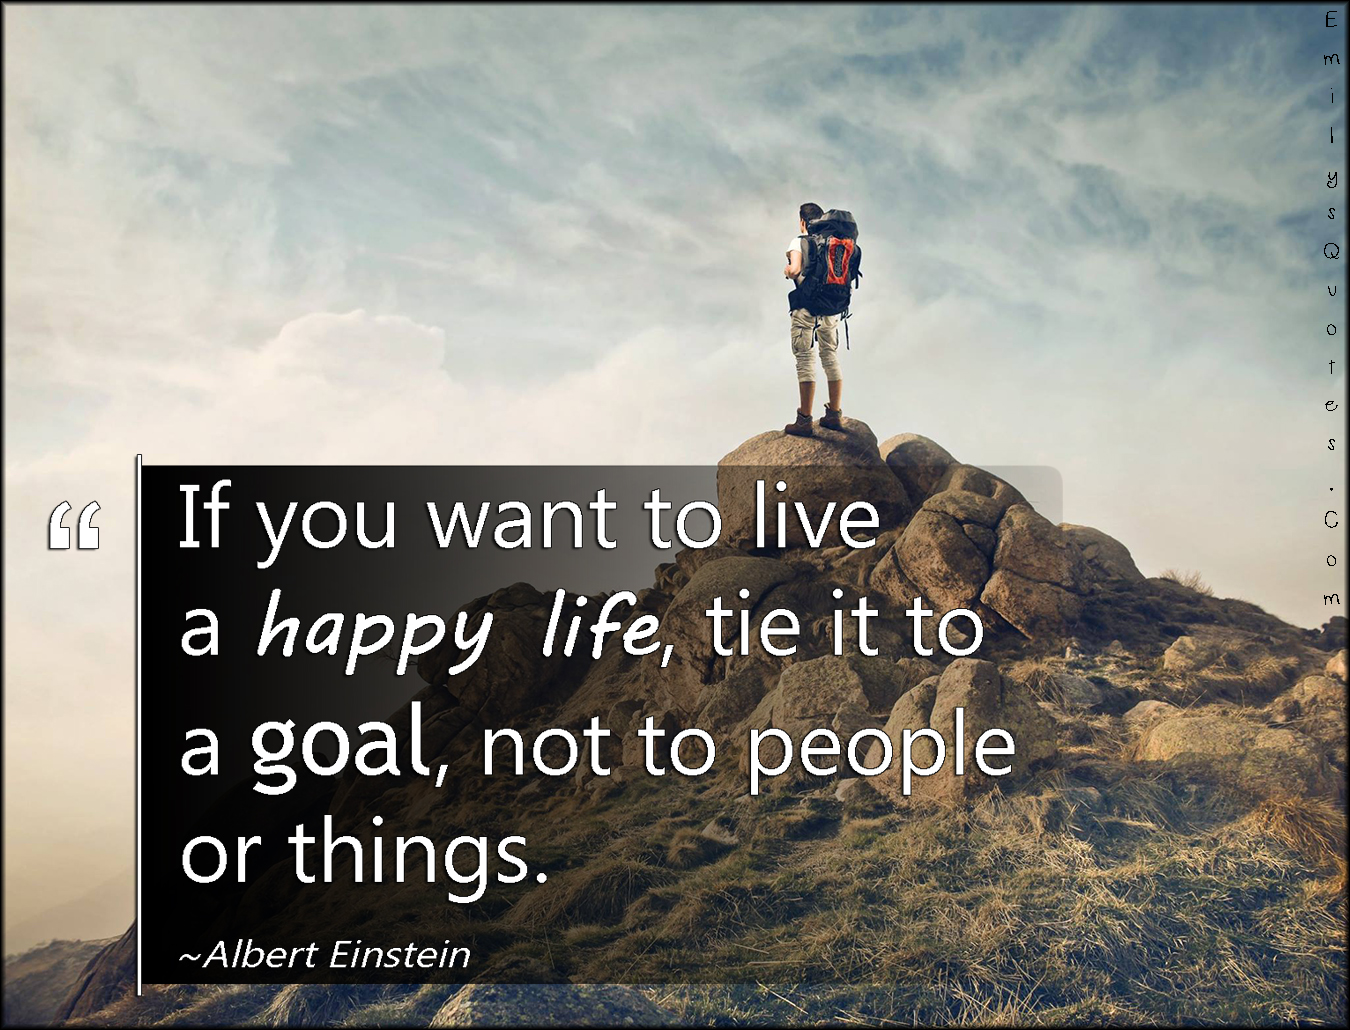 Happy Life Inspirational Quotes If You Want To Live A Happy Life Tie It To A Goal Not To People